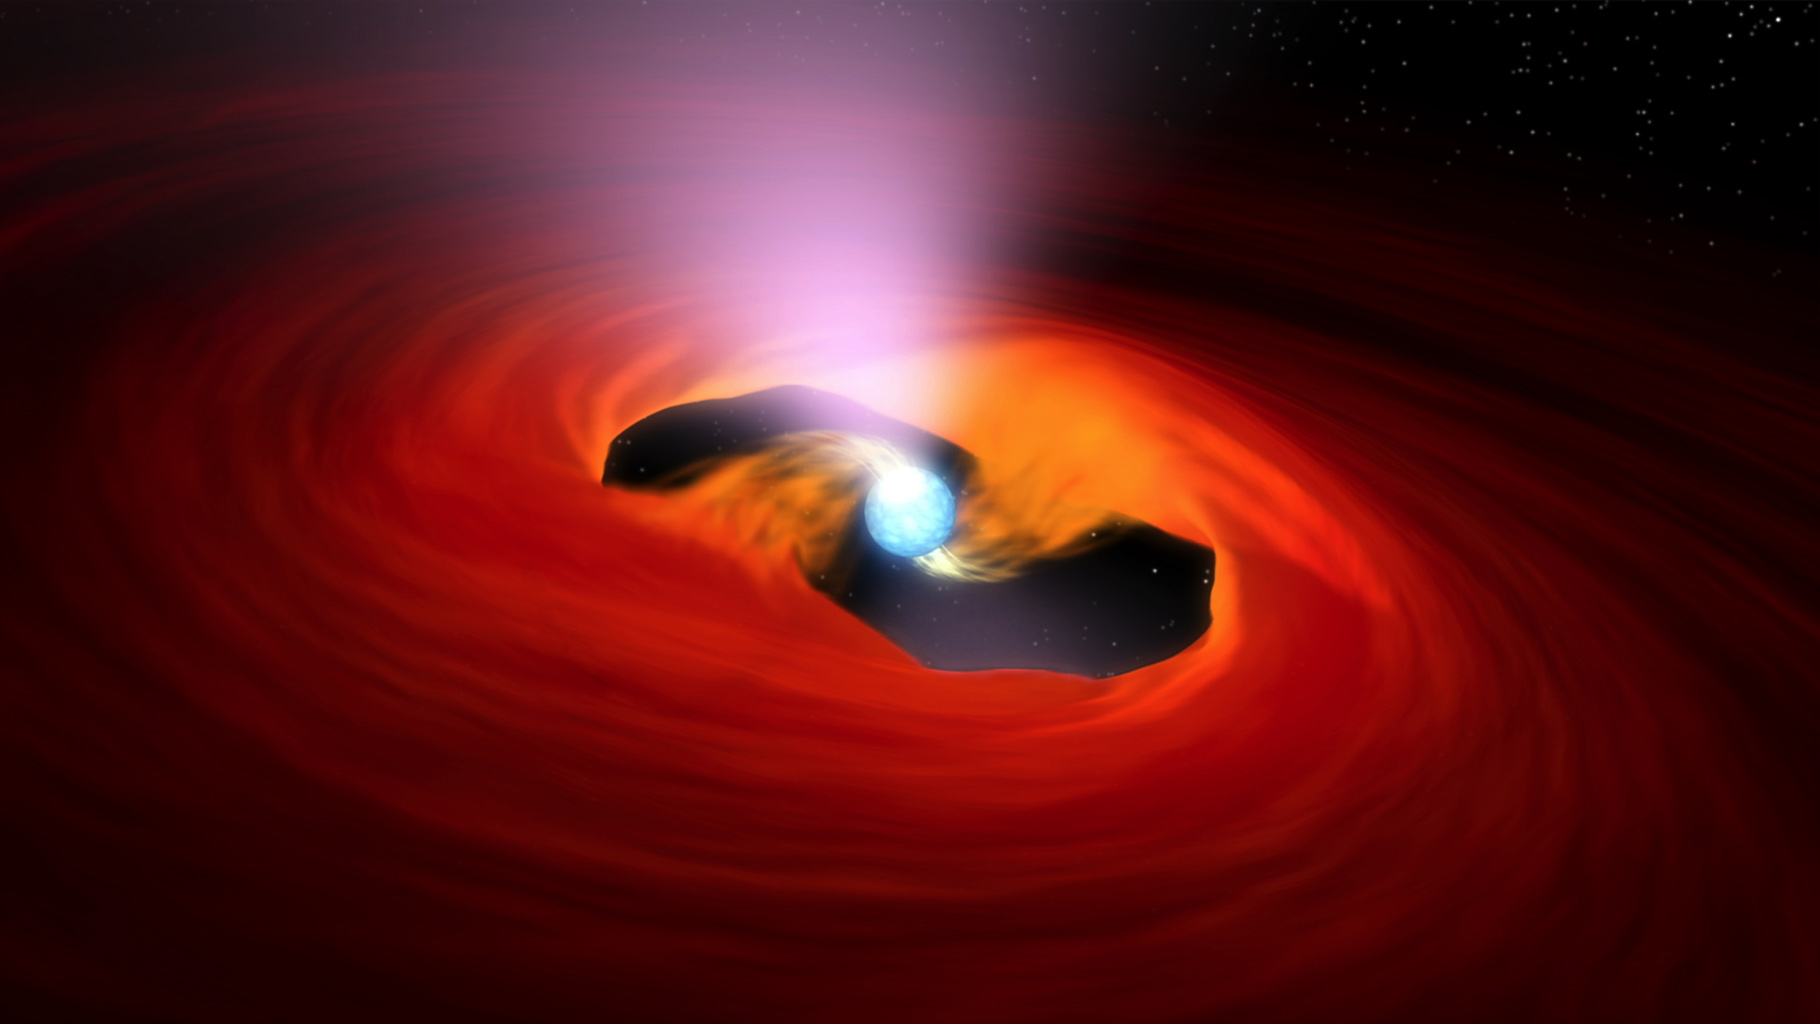 This image shows a neutron star -- the core of a star that exploded in a massive supernova. This particular neutron star is known as a pulsar because it sends out rotating beams of X-rays that sweep past Earth like lighthouse beacons.